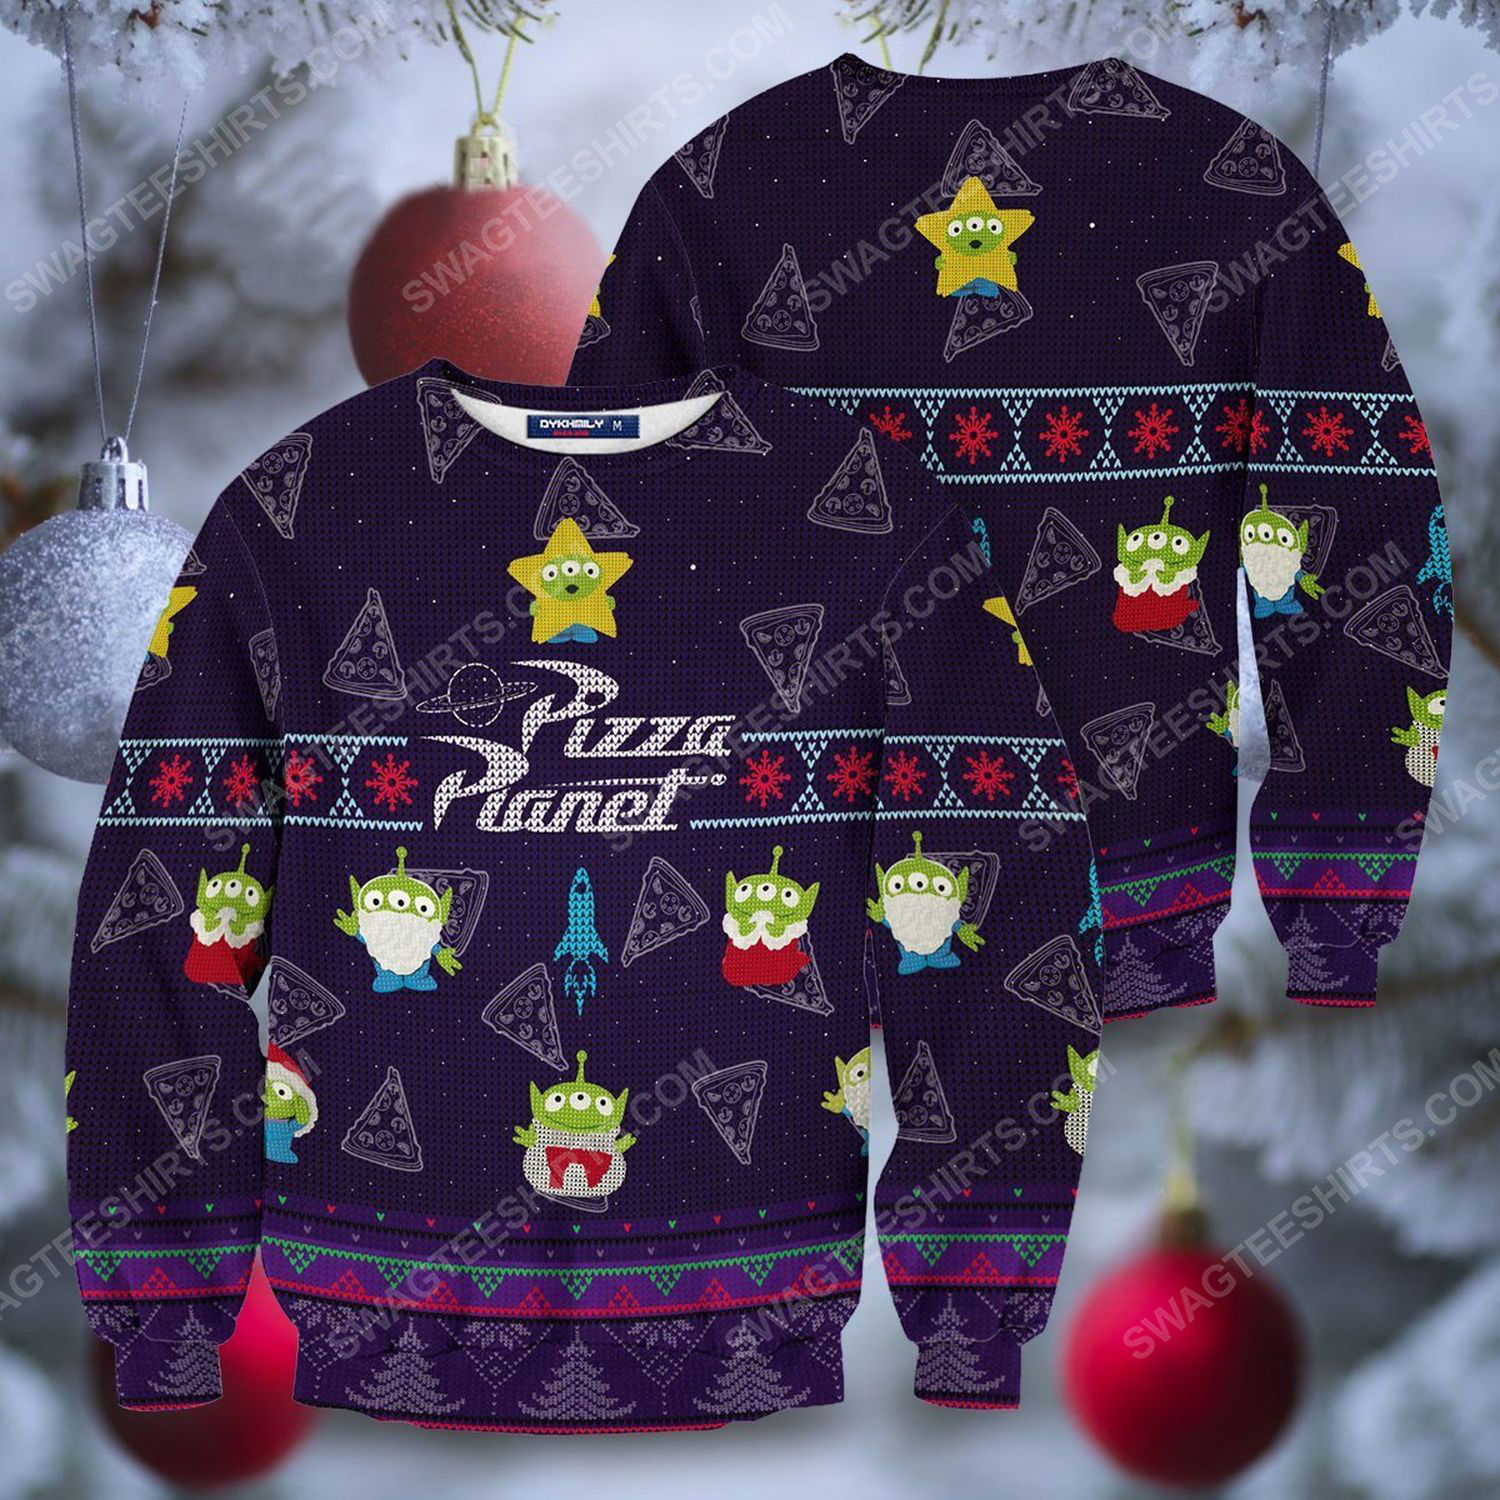 Pizza planet full print ugly christmas sweater 1